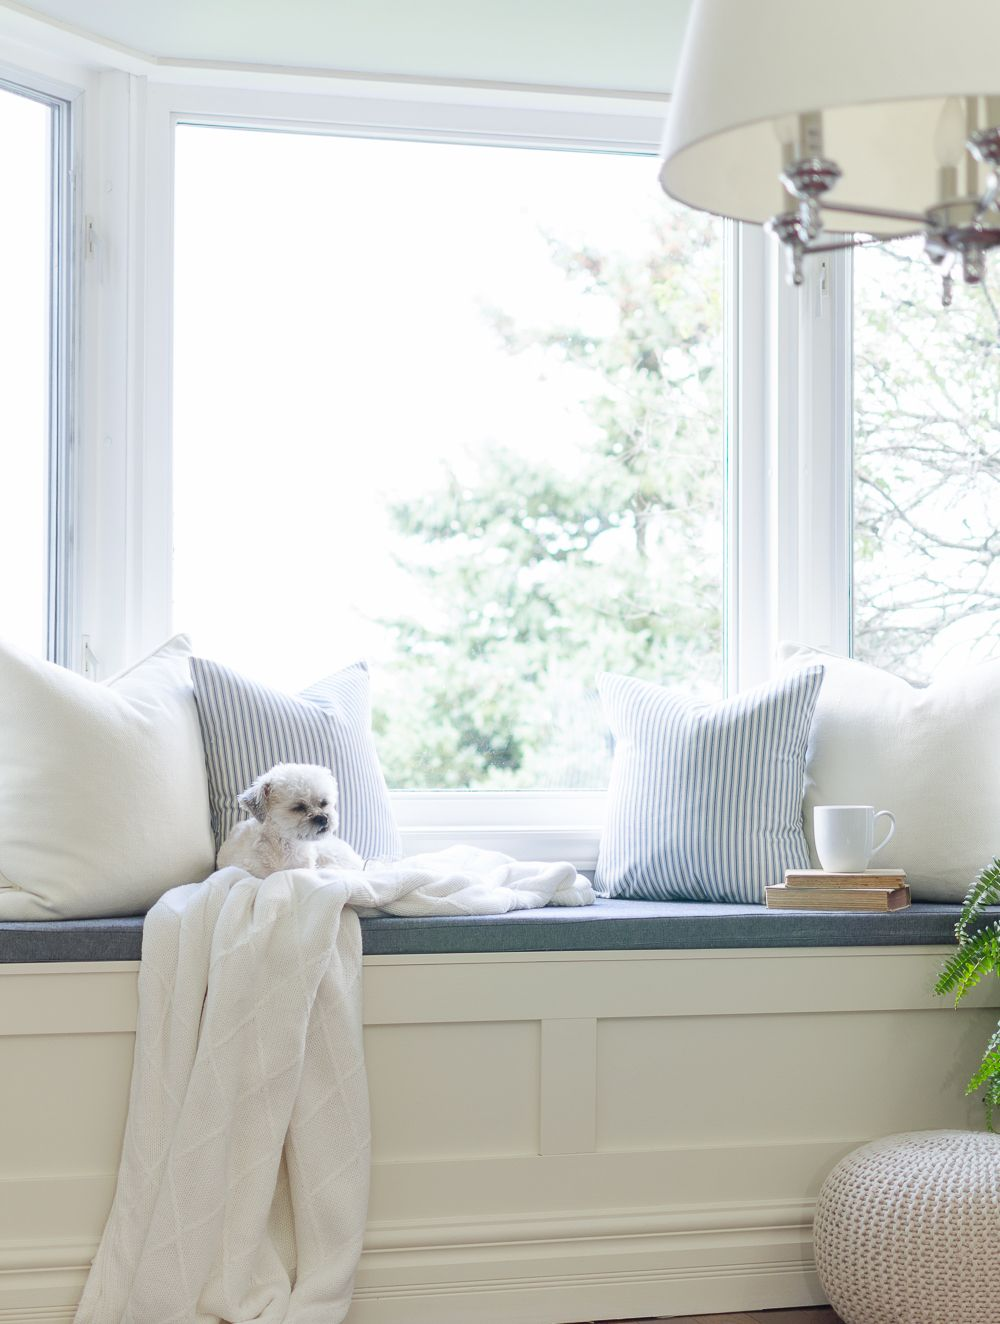 10 Cozy And Charming Window Seat Ideas